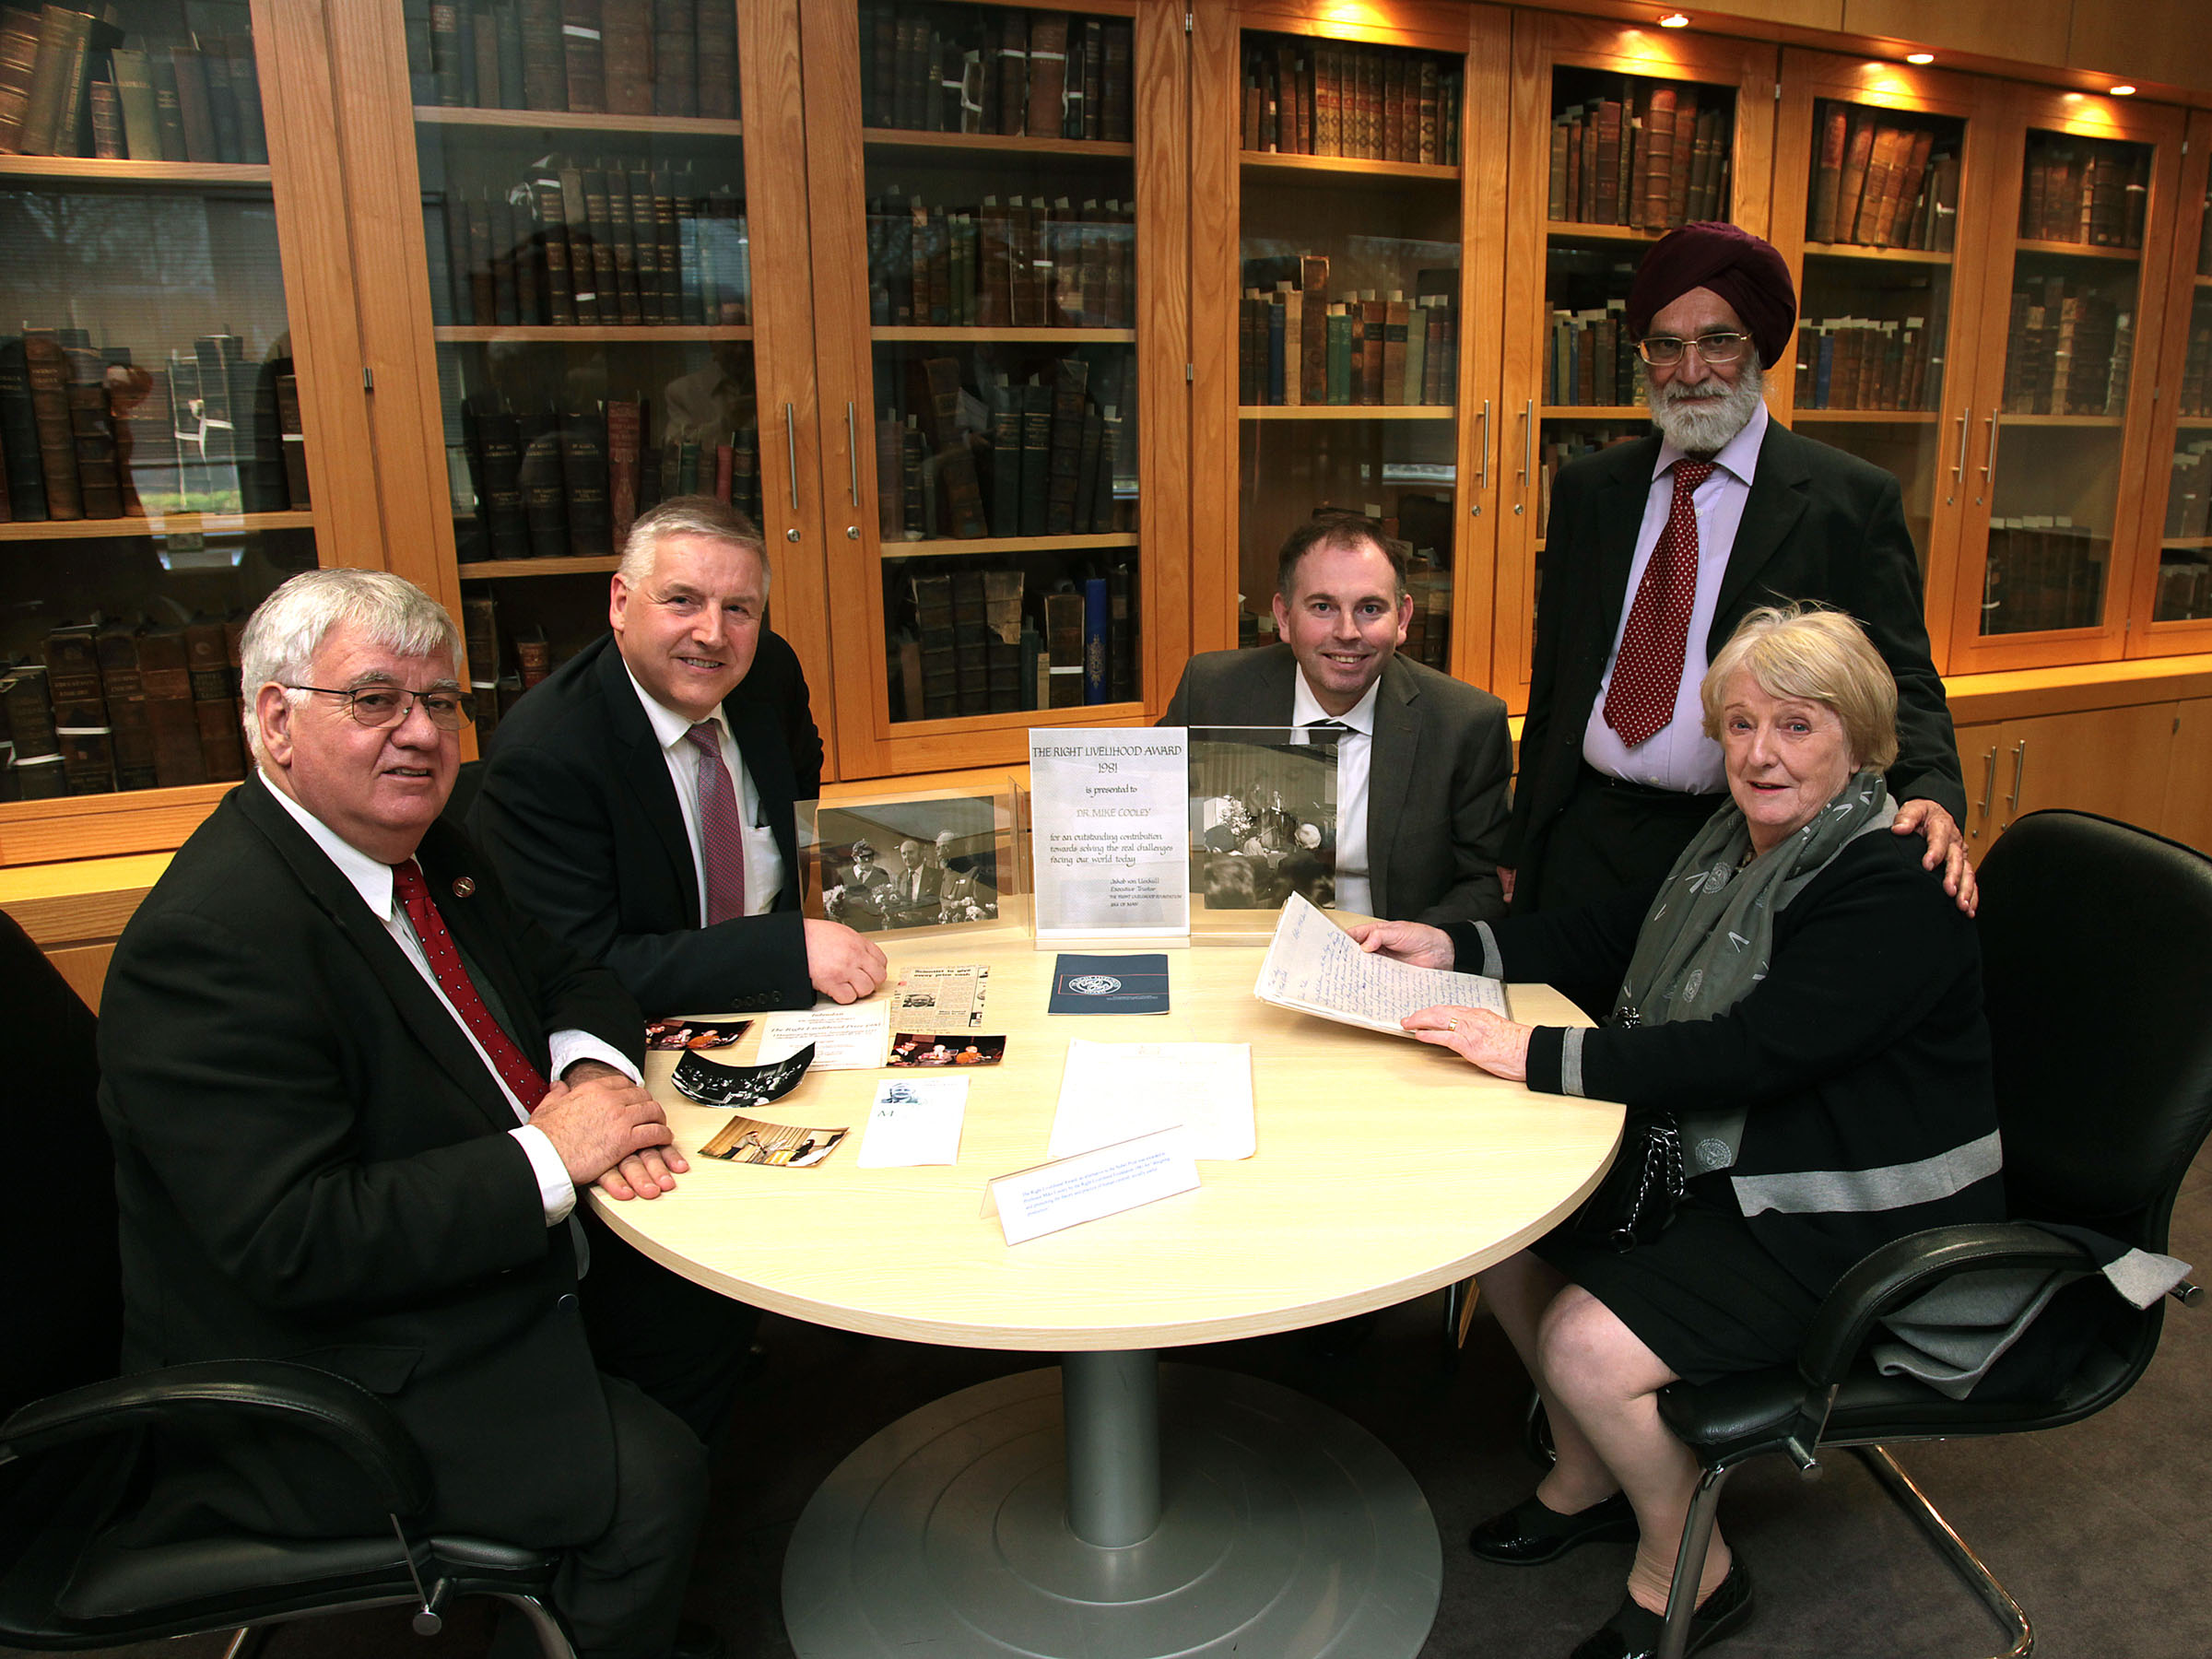 Pictured from left are: Professor Petros Groumpos, University of Patras, Greece; Dr. Larry Stapleton, INSYTE, School of Science and Computing; Kieran Cronin, Librarian, Luke Wadding Library; Professor Karamjit Gill, Editor-in-Chief, Artificial Intelligence and Society; Mabel Kidney, sister of Prof Mike Cooley